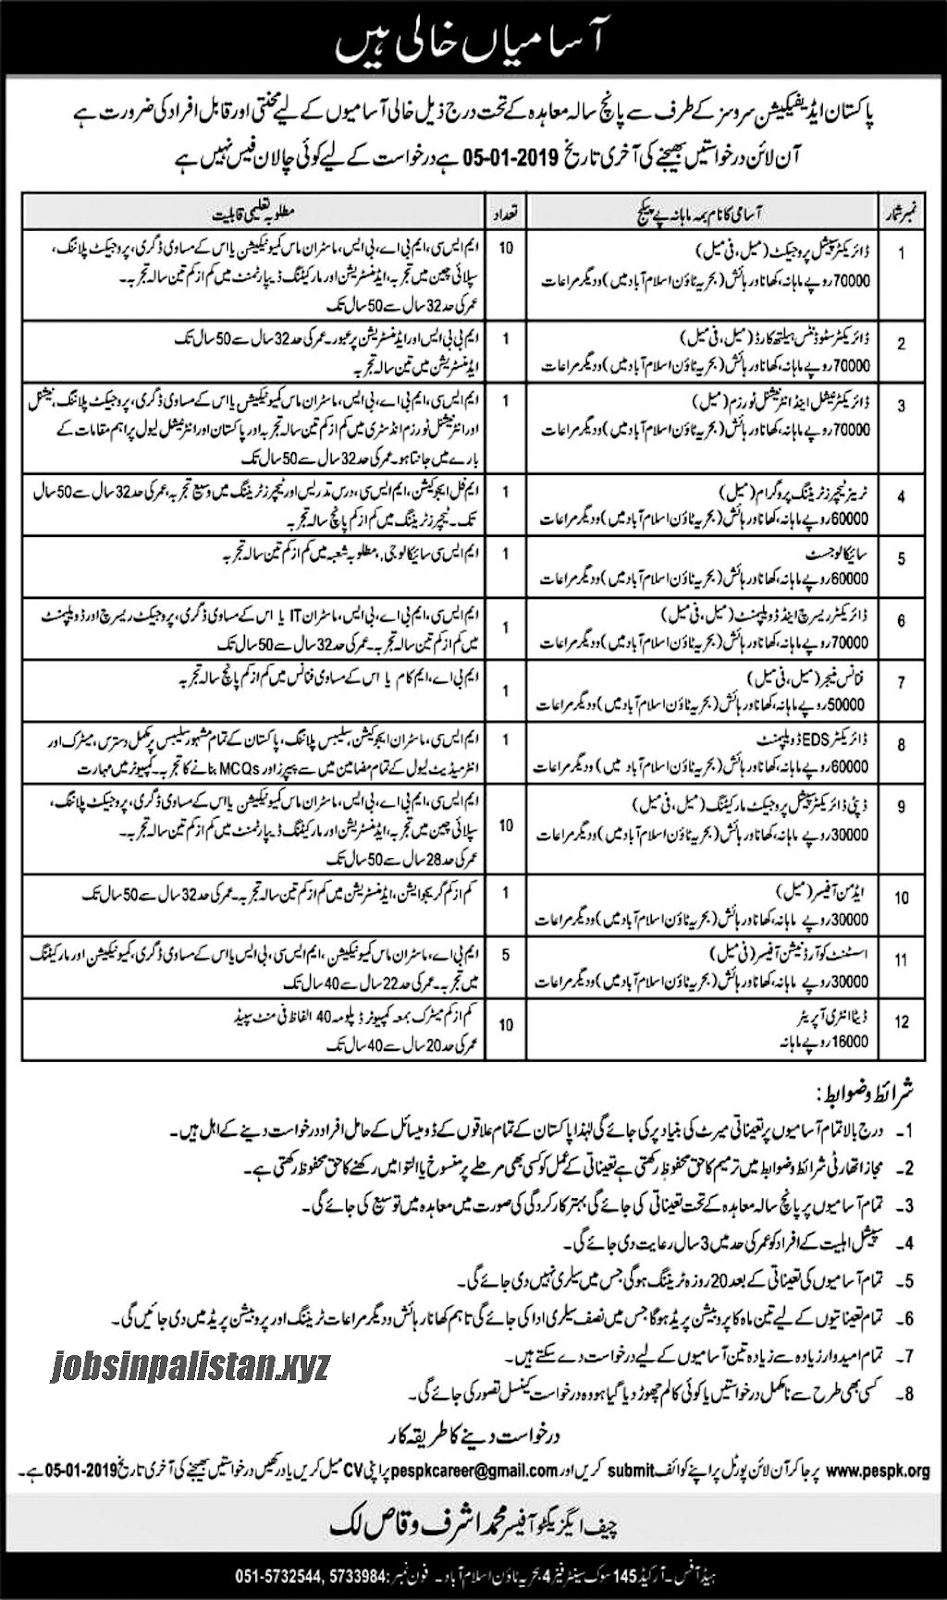 Advertisement for Pakistan Edification Services Jobs